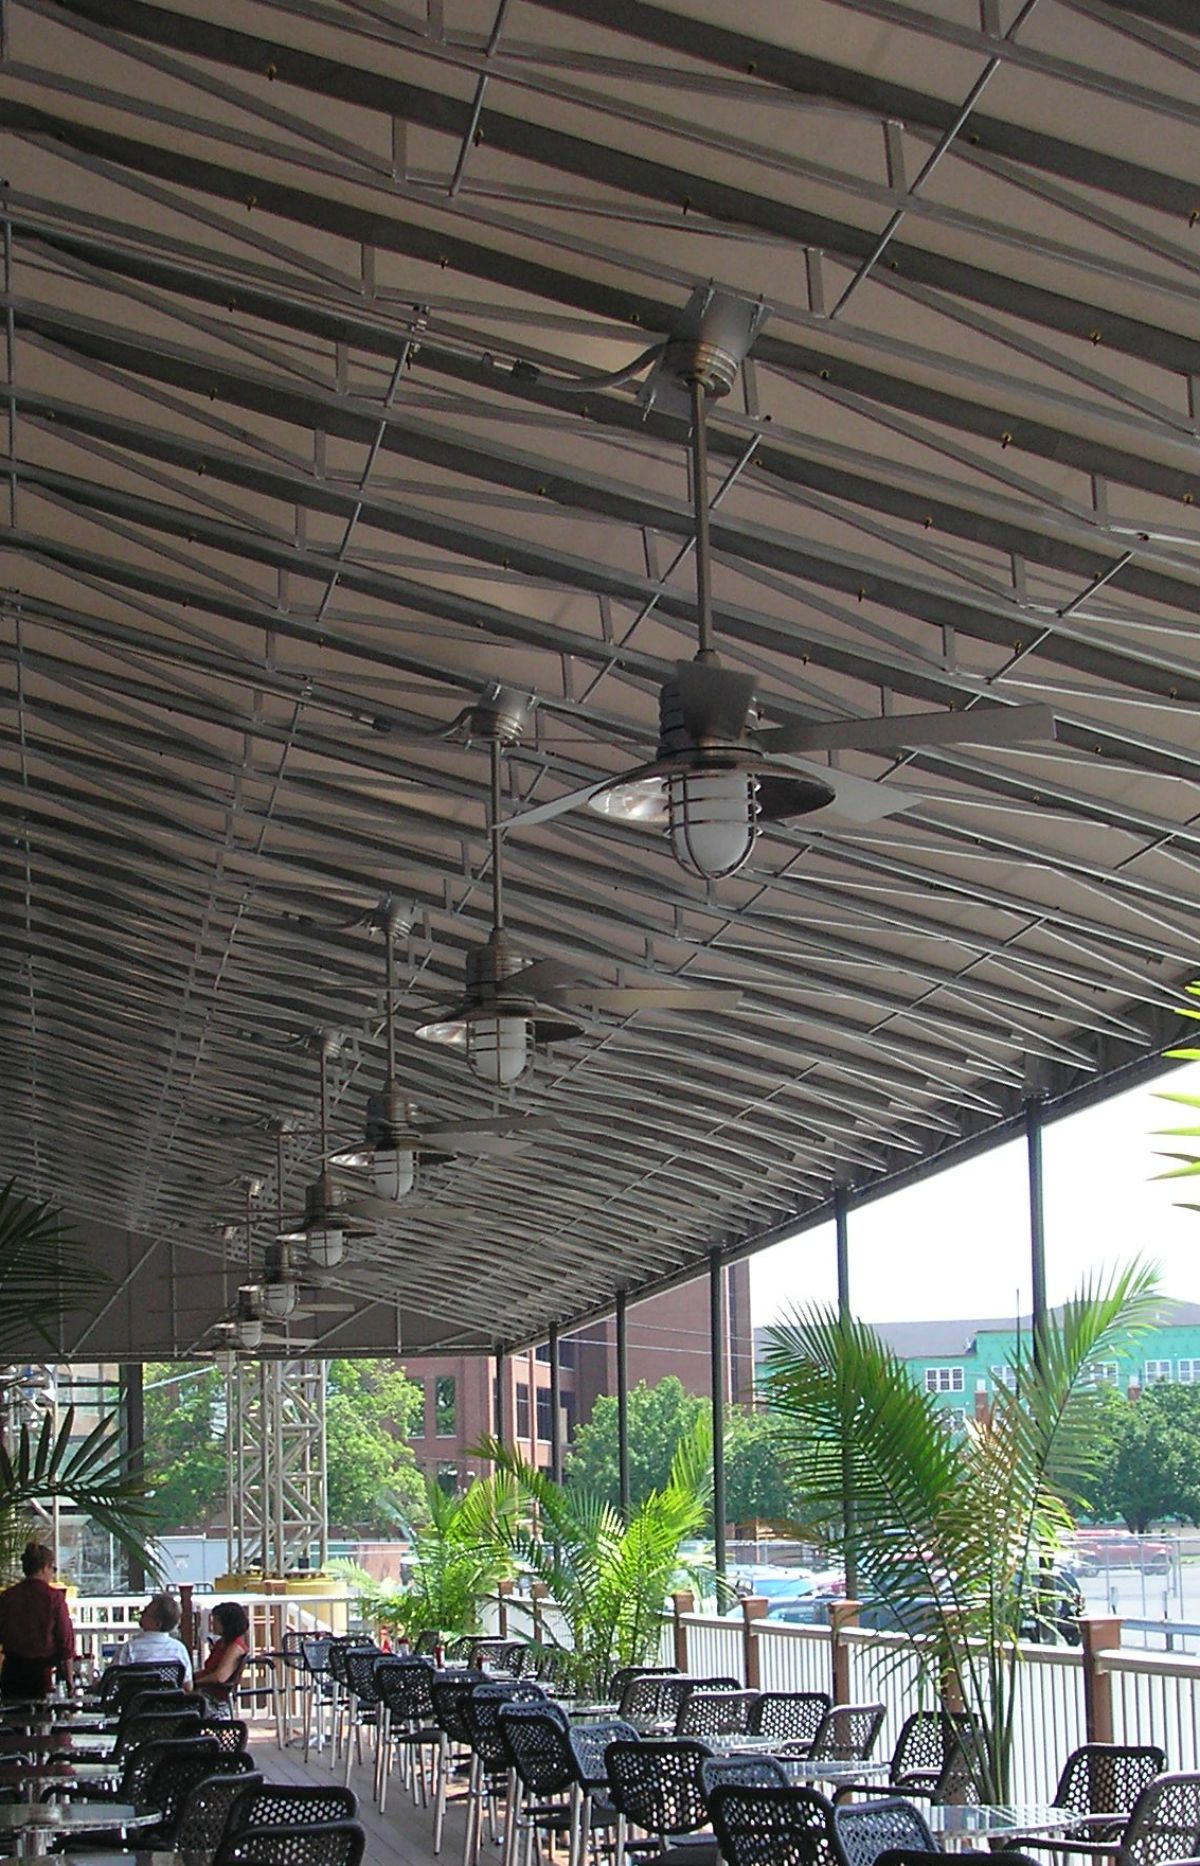 Eat outside! Expand your seating area by adding a dining canopy to your restaurant. & Eat outside! Expand your seating area by adding a dining canopy to ...